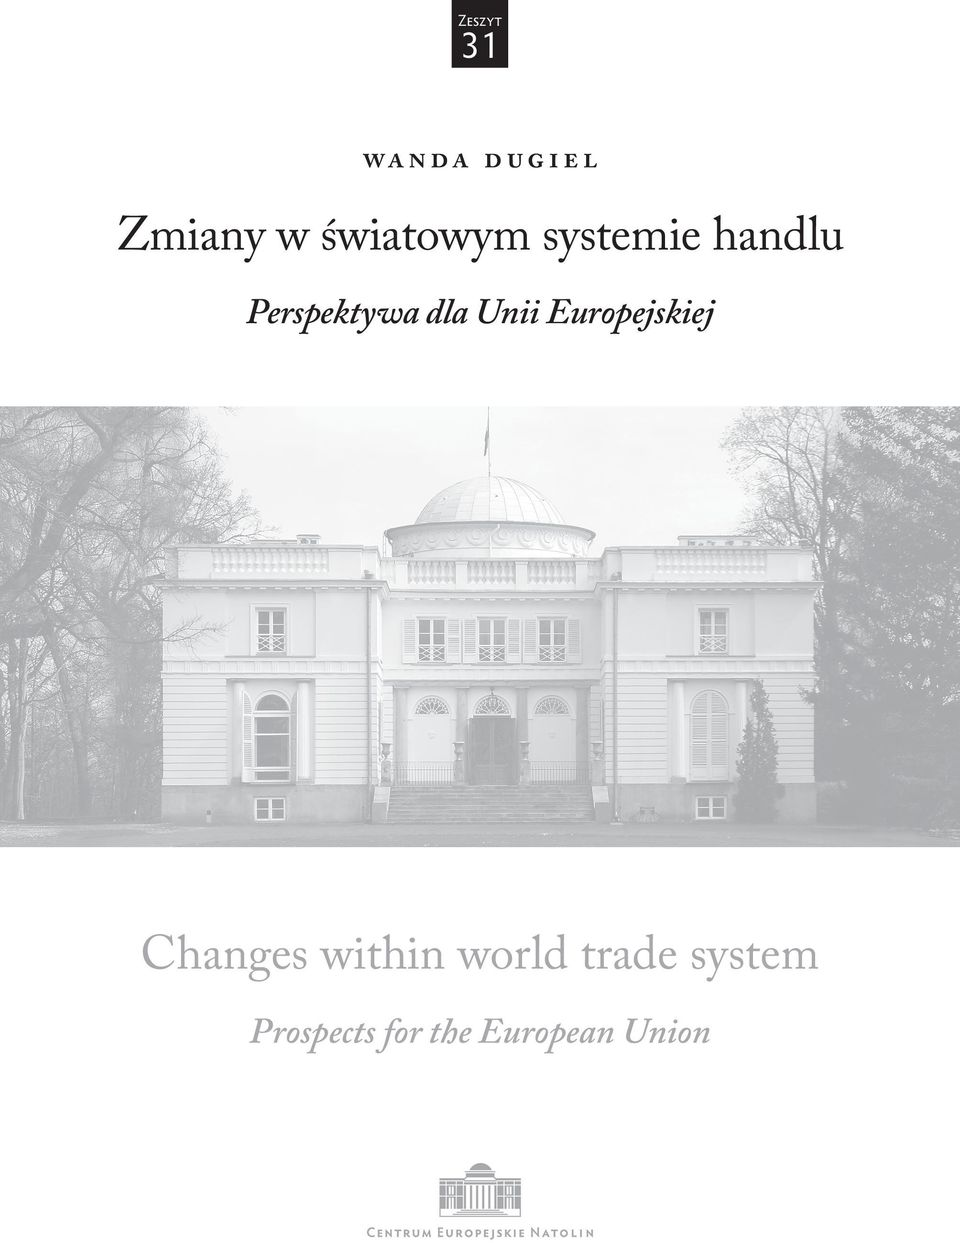 Unii Europejskiej Changes within world